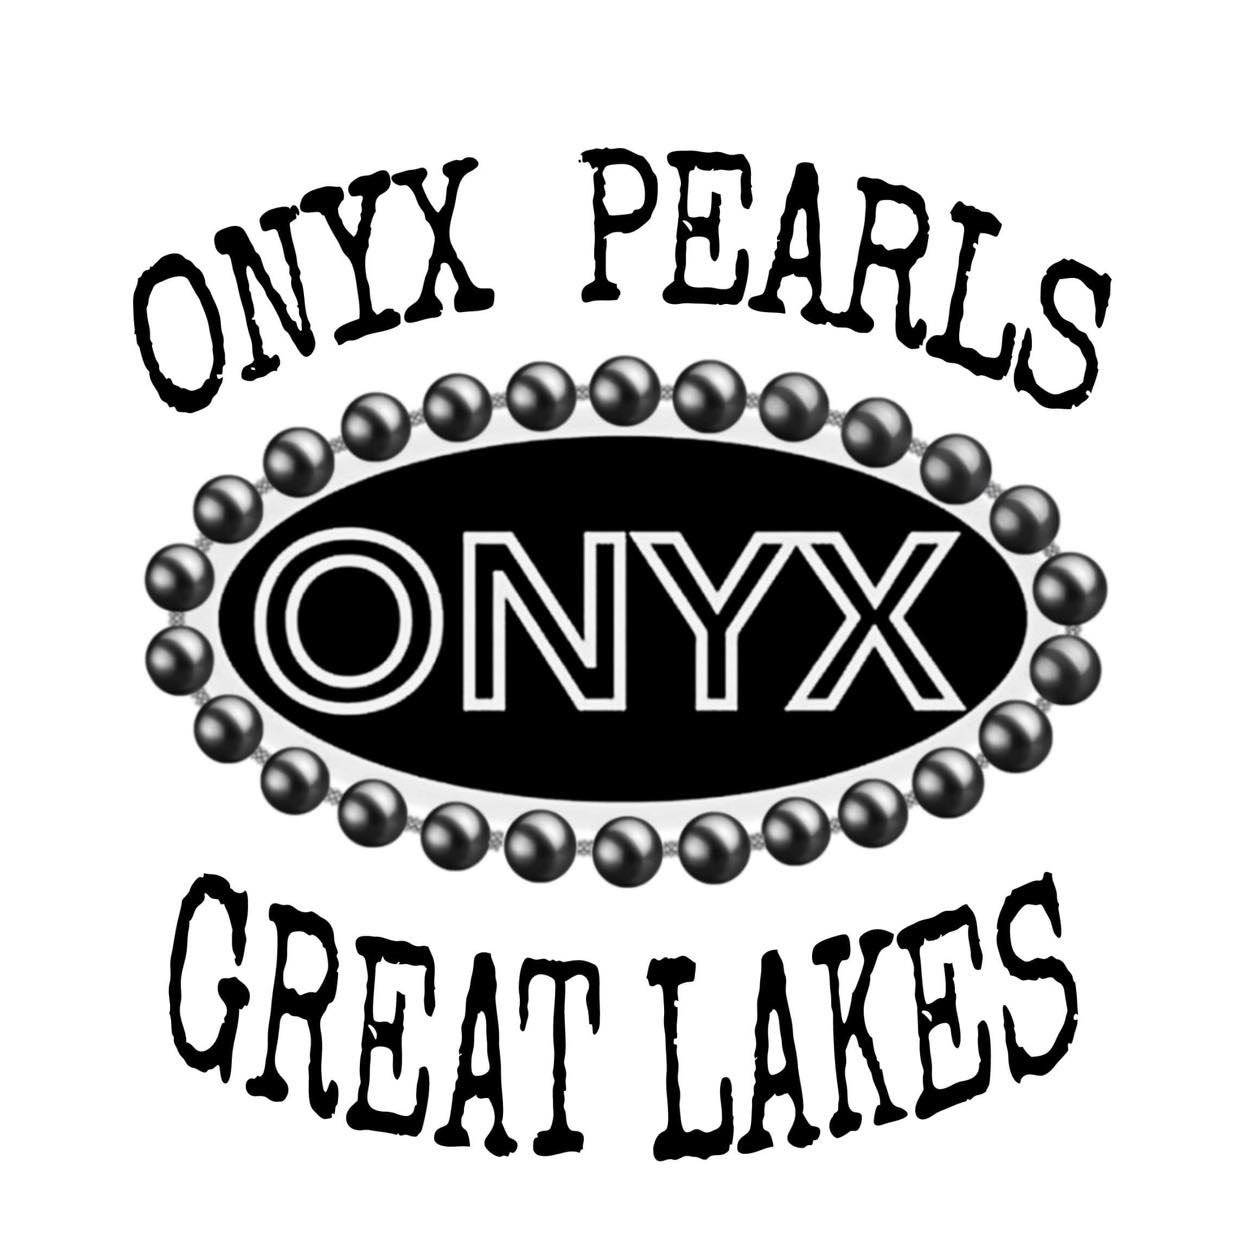 Onyx Pearls Great Lakes